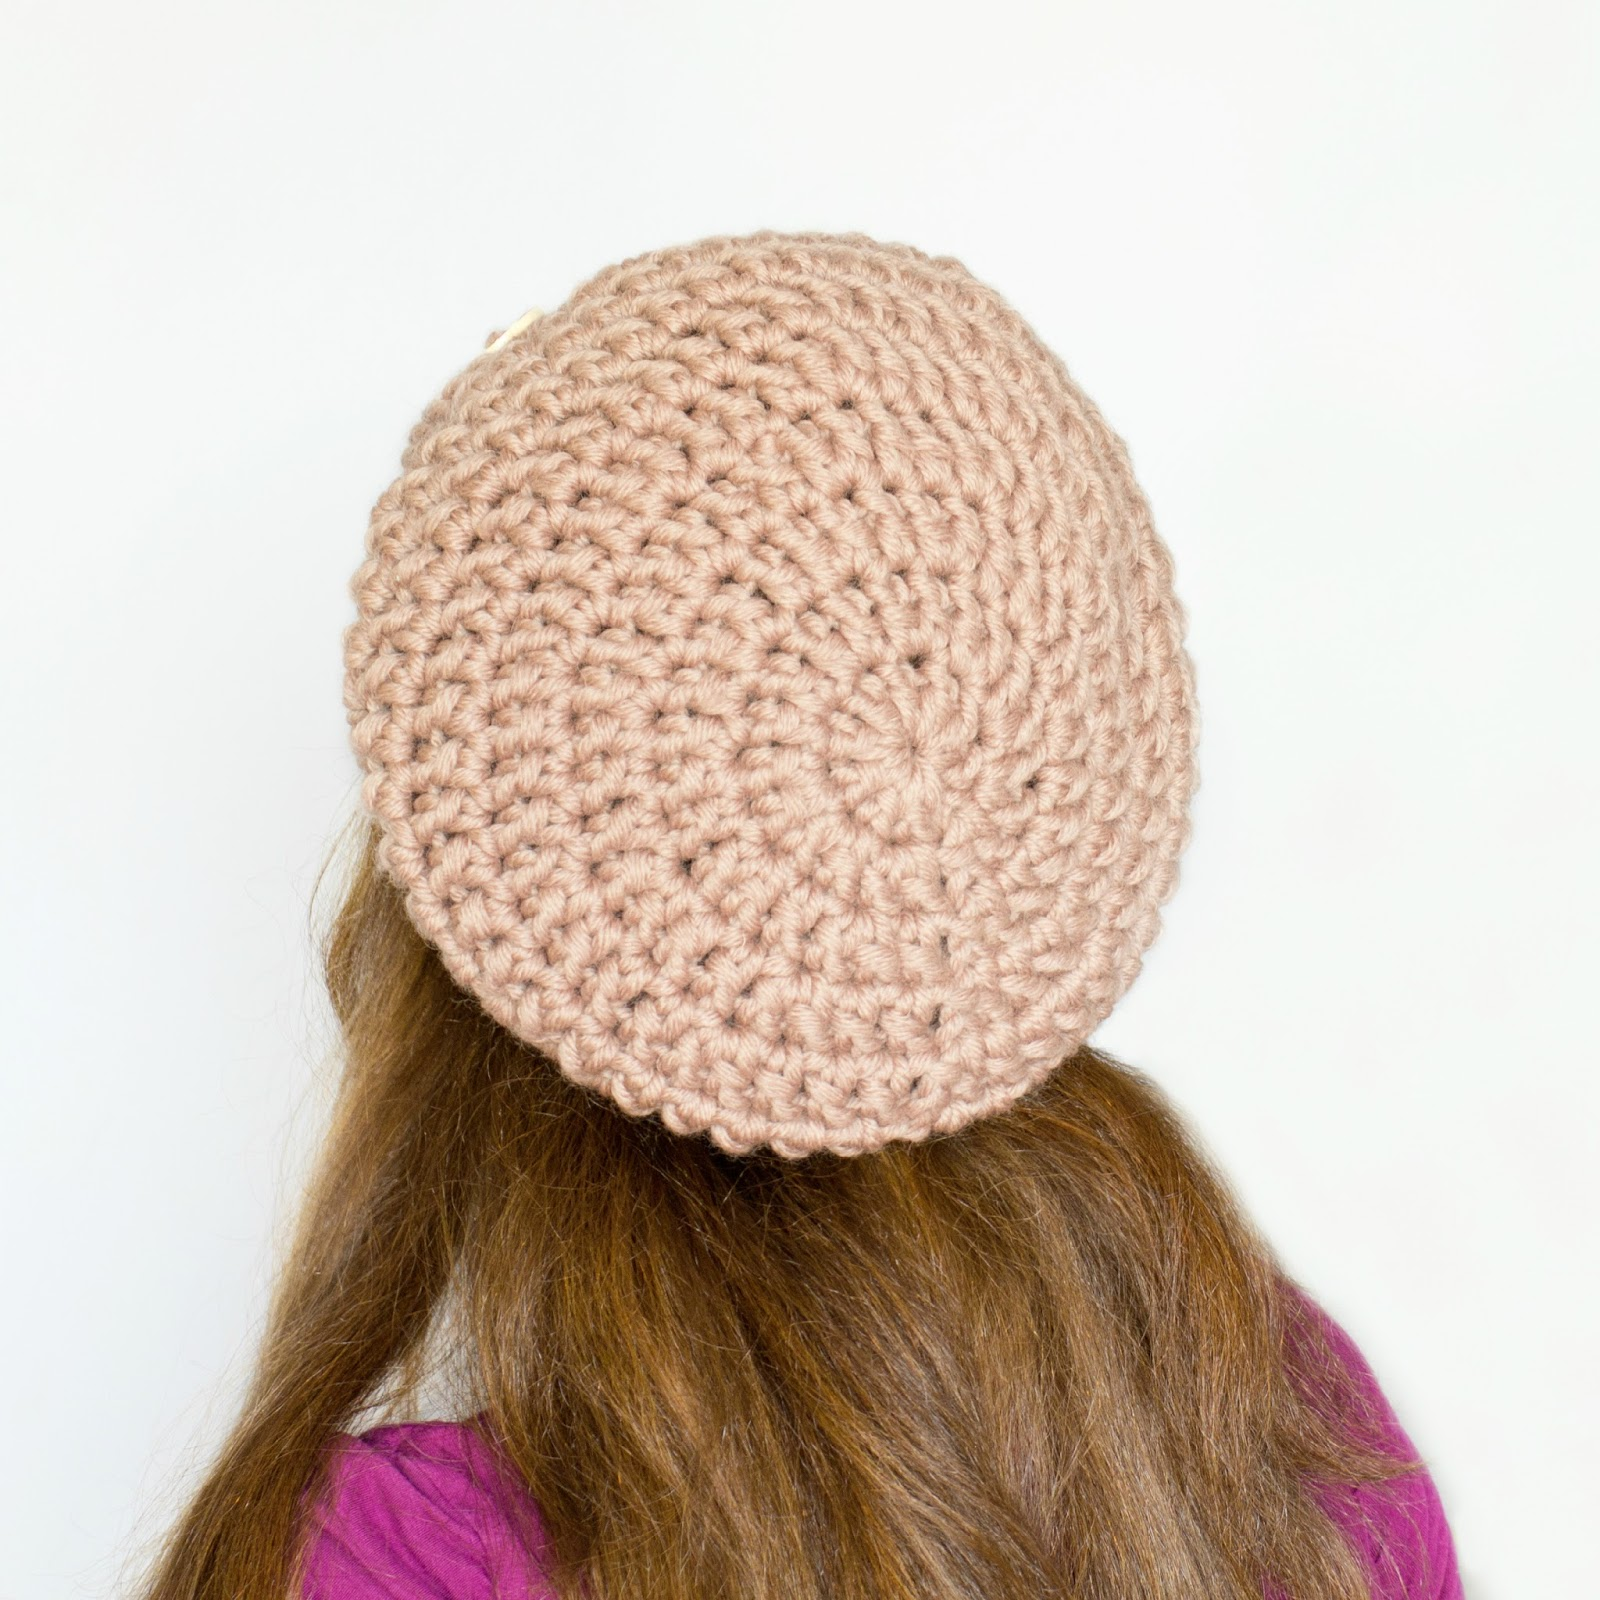 ... Honey Craft, Crochet, Create: Chunky Slouchy Beanie Crochet Pattern